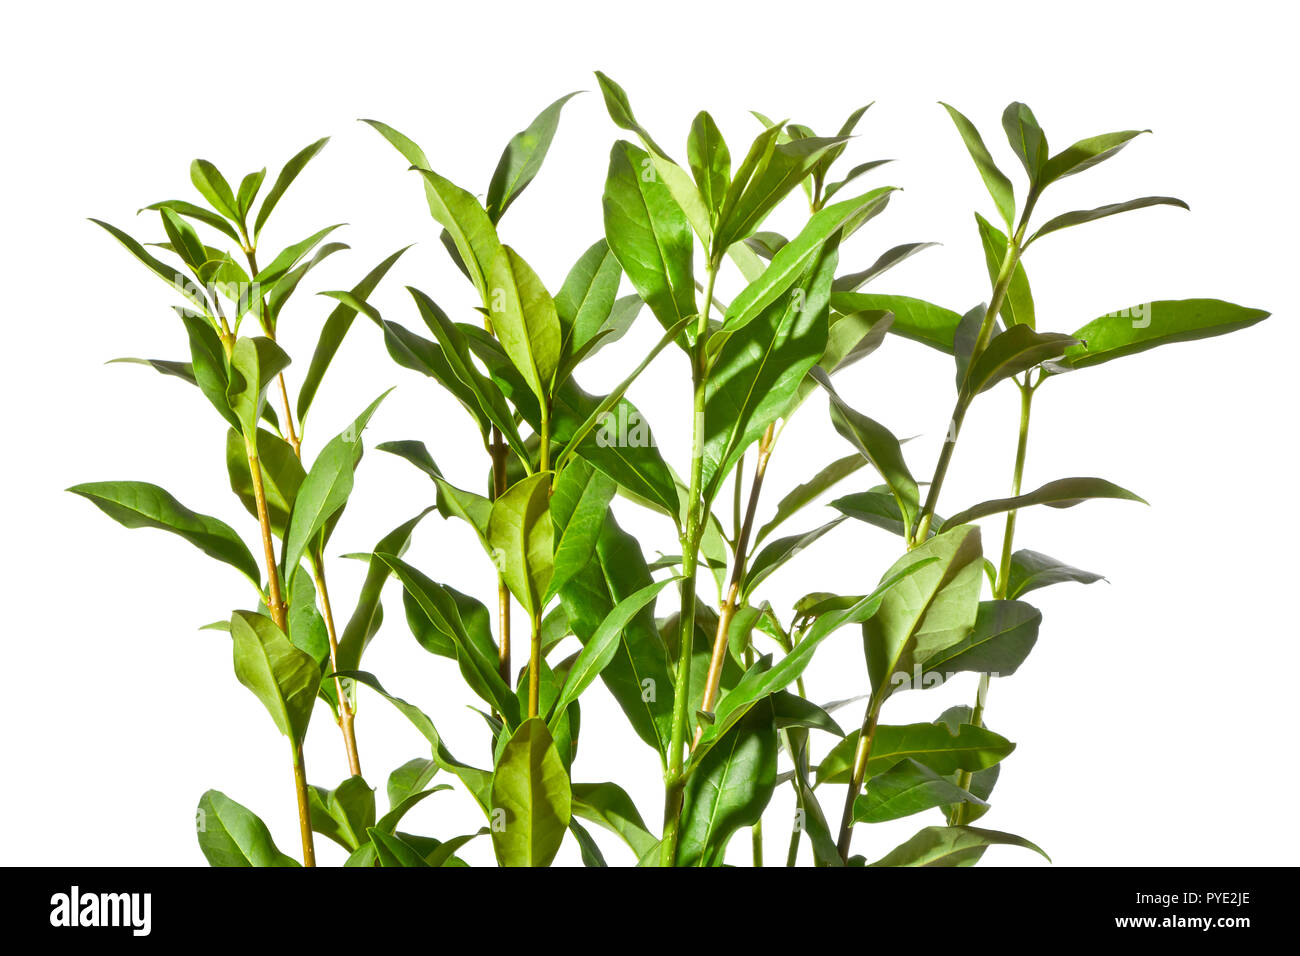 A privet twigs with leaves on a white background. - Stock Image